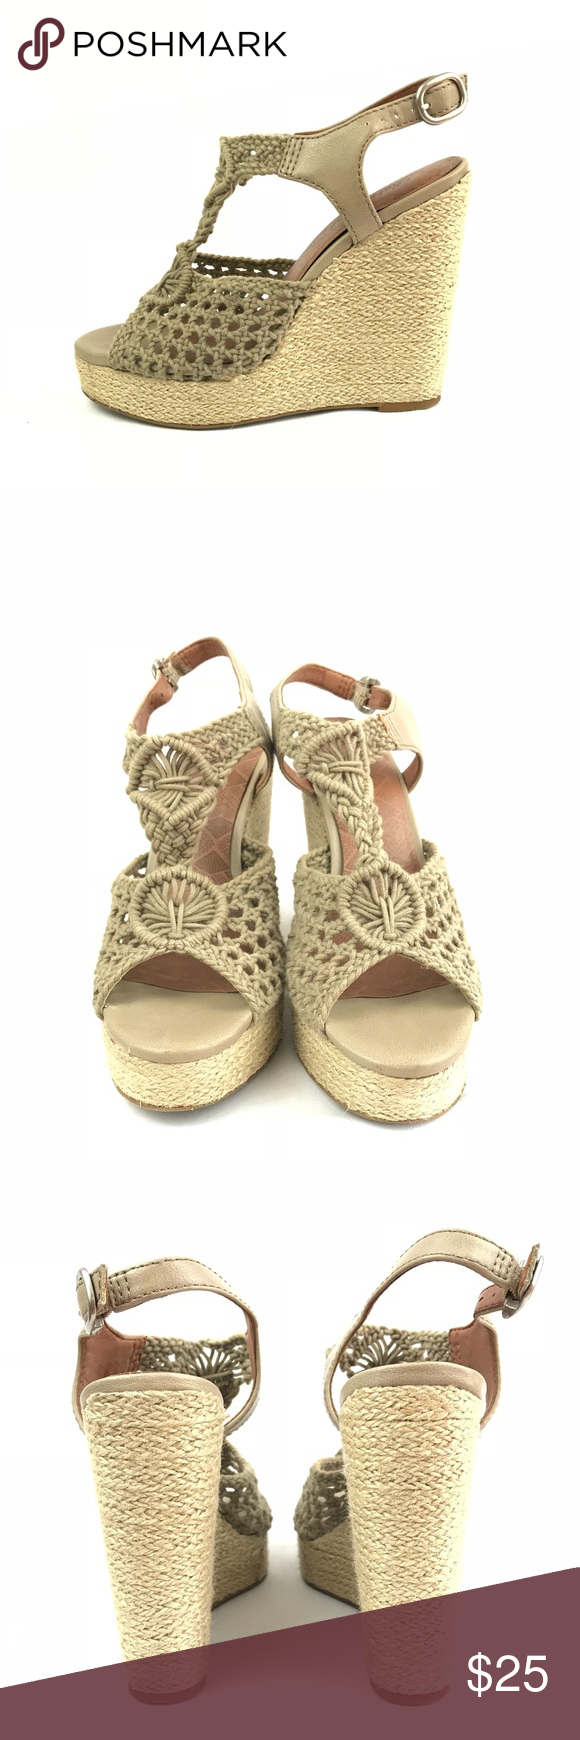 Lucky Brand Mesh Crochet Green Wedge Sandals Cute, comfortable and stylish! Lucky Brand Shoes Wedges